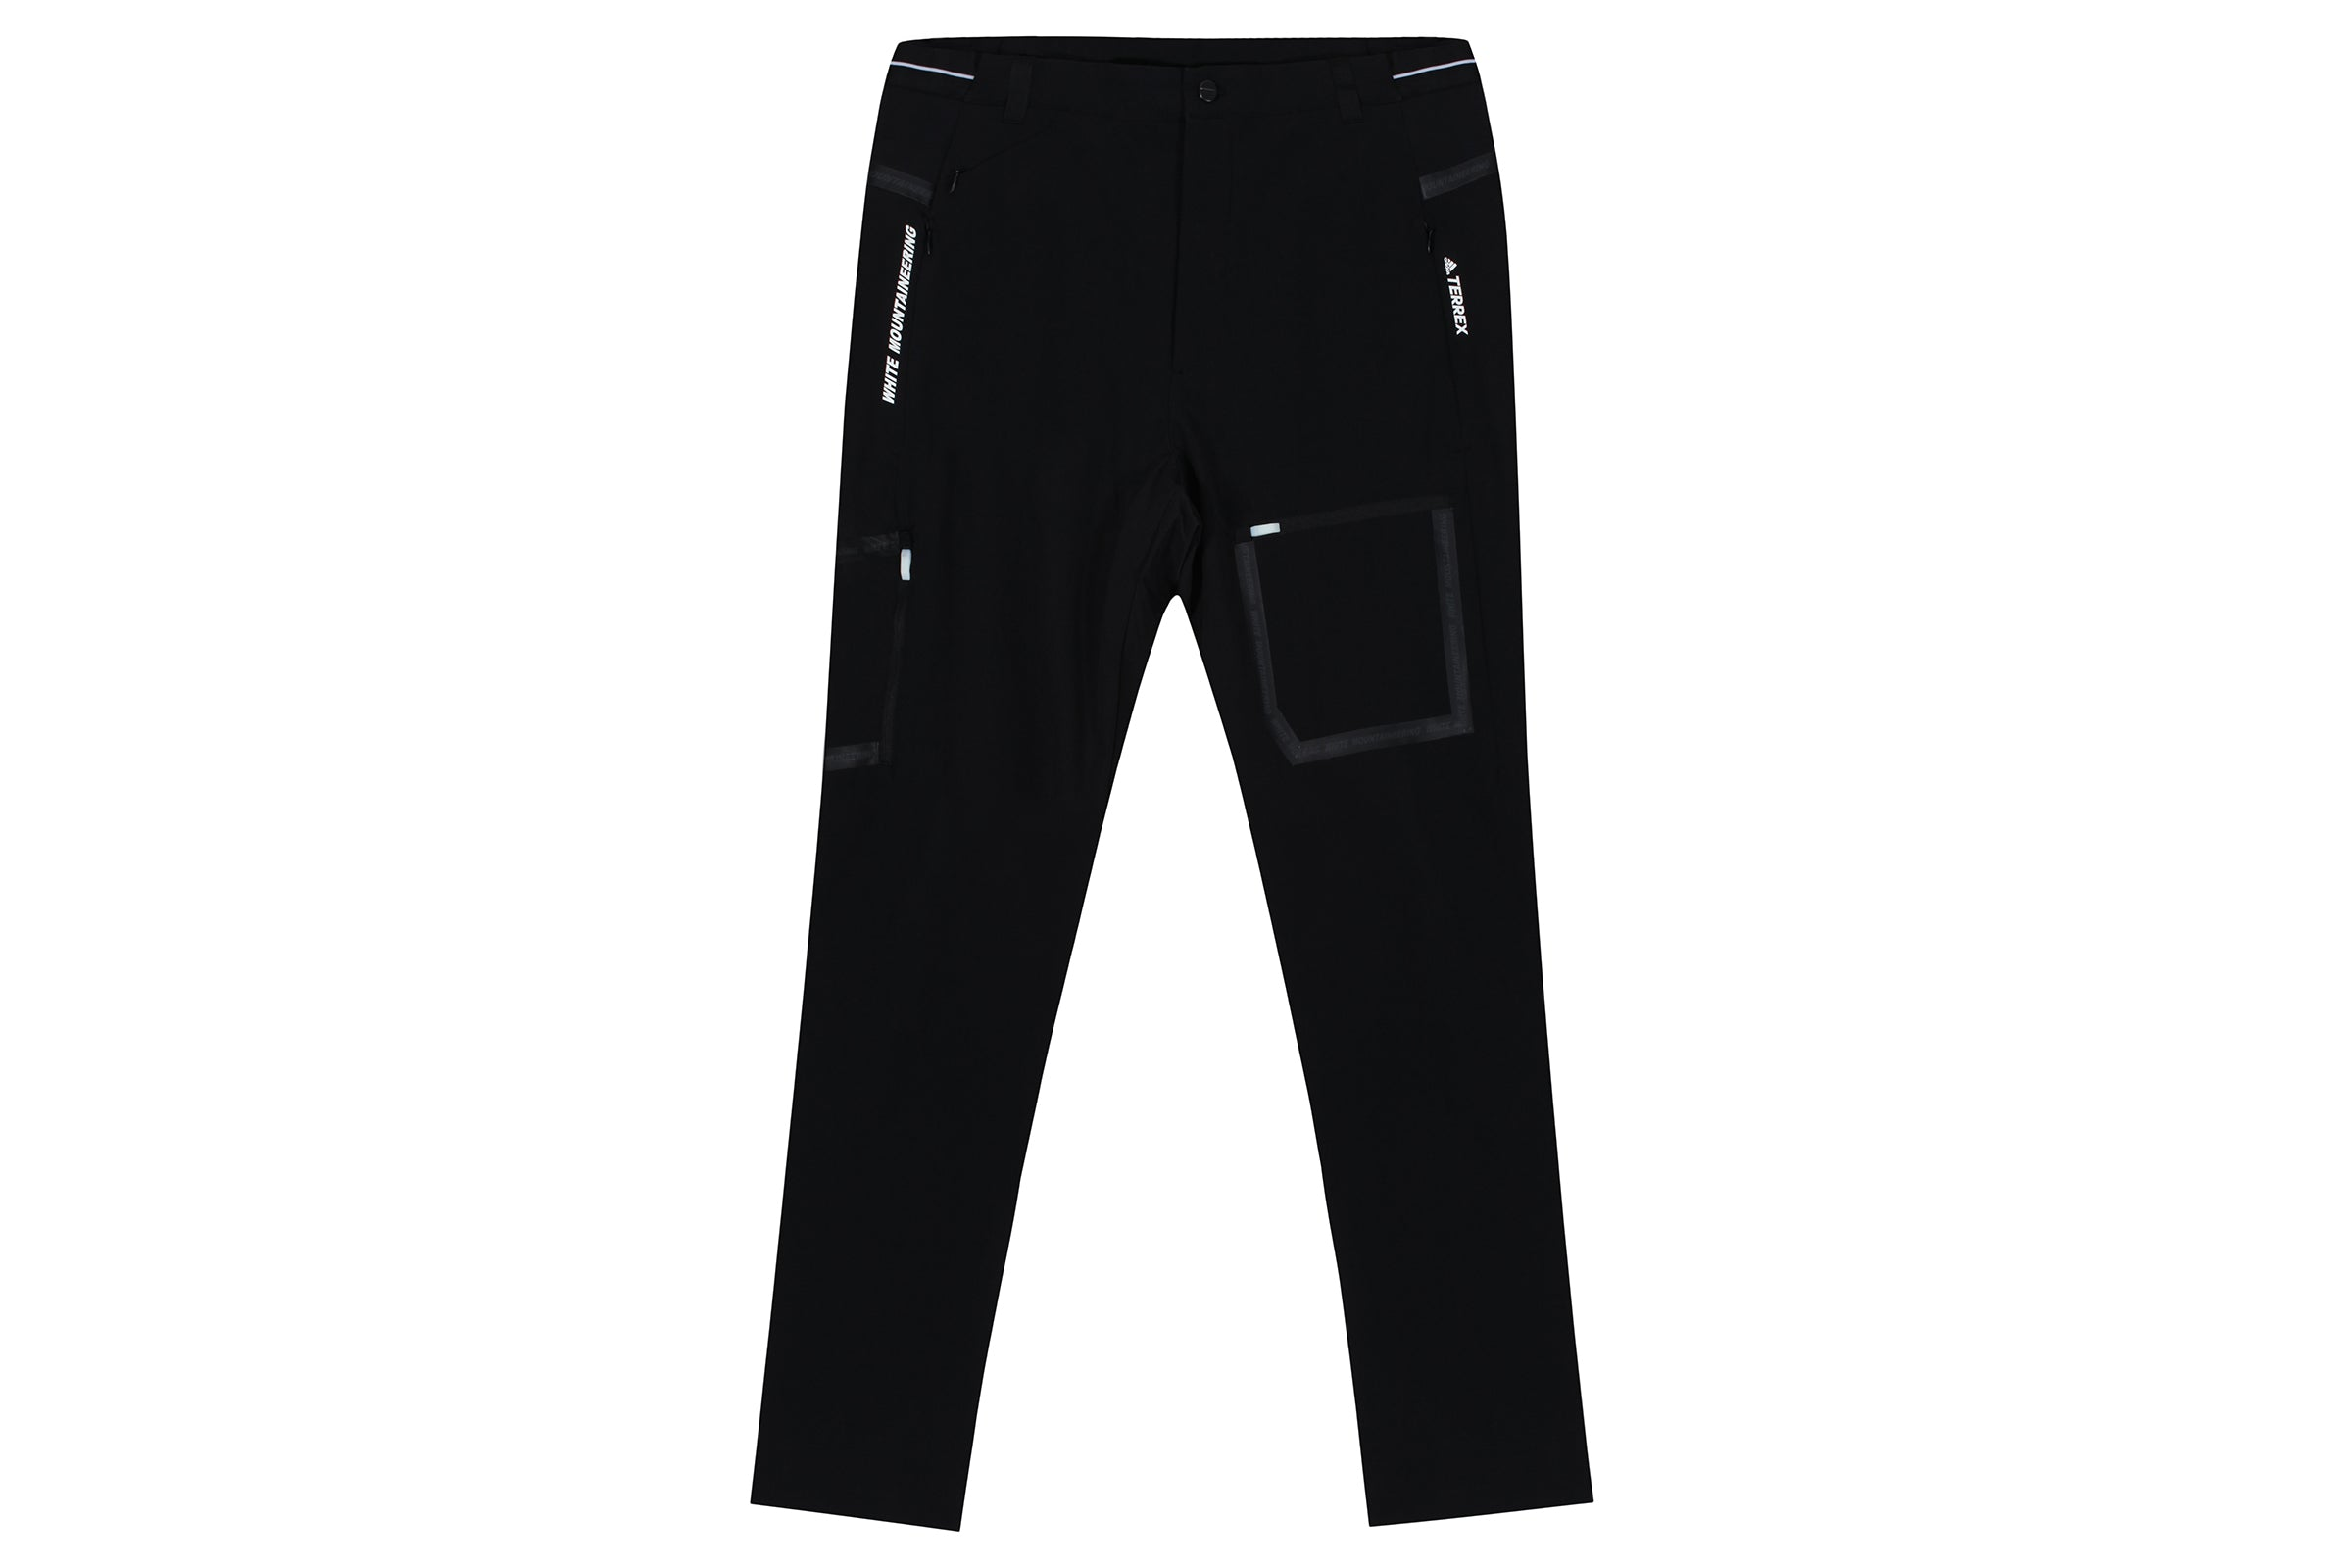 outlet store dad39 953bd Adidas All Season Pant x White Mountaineering